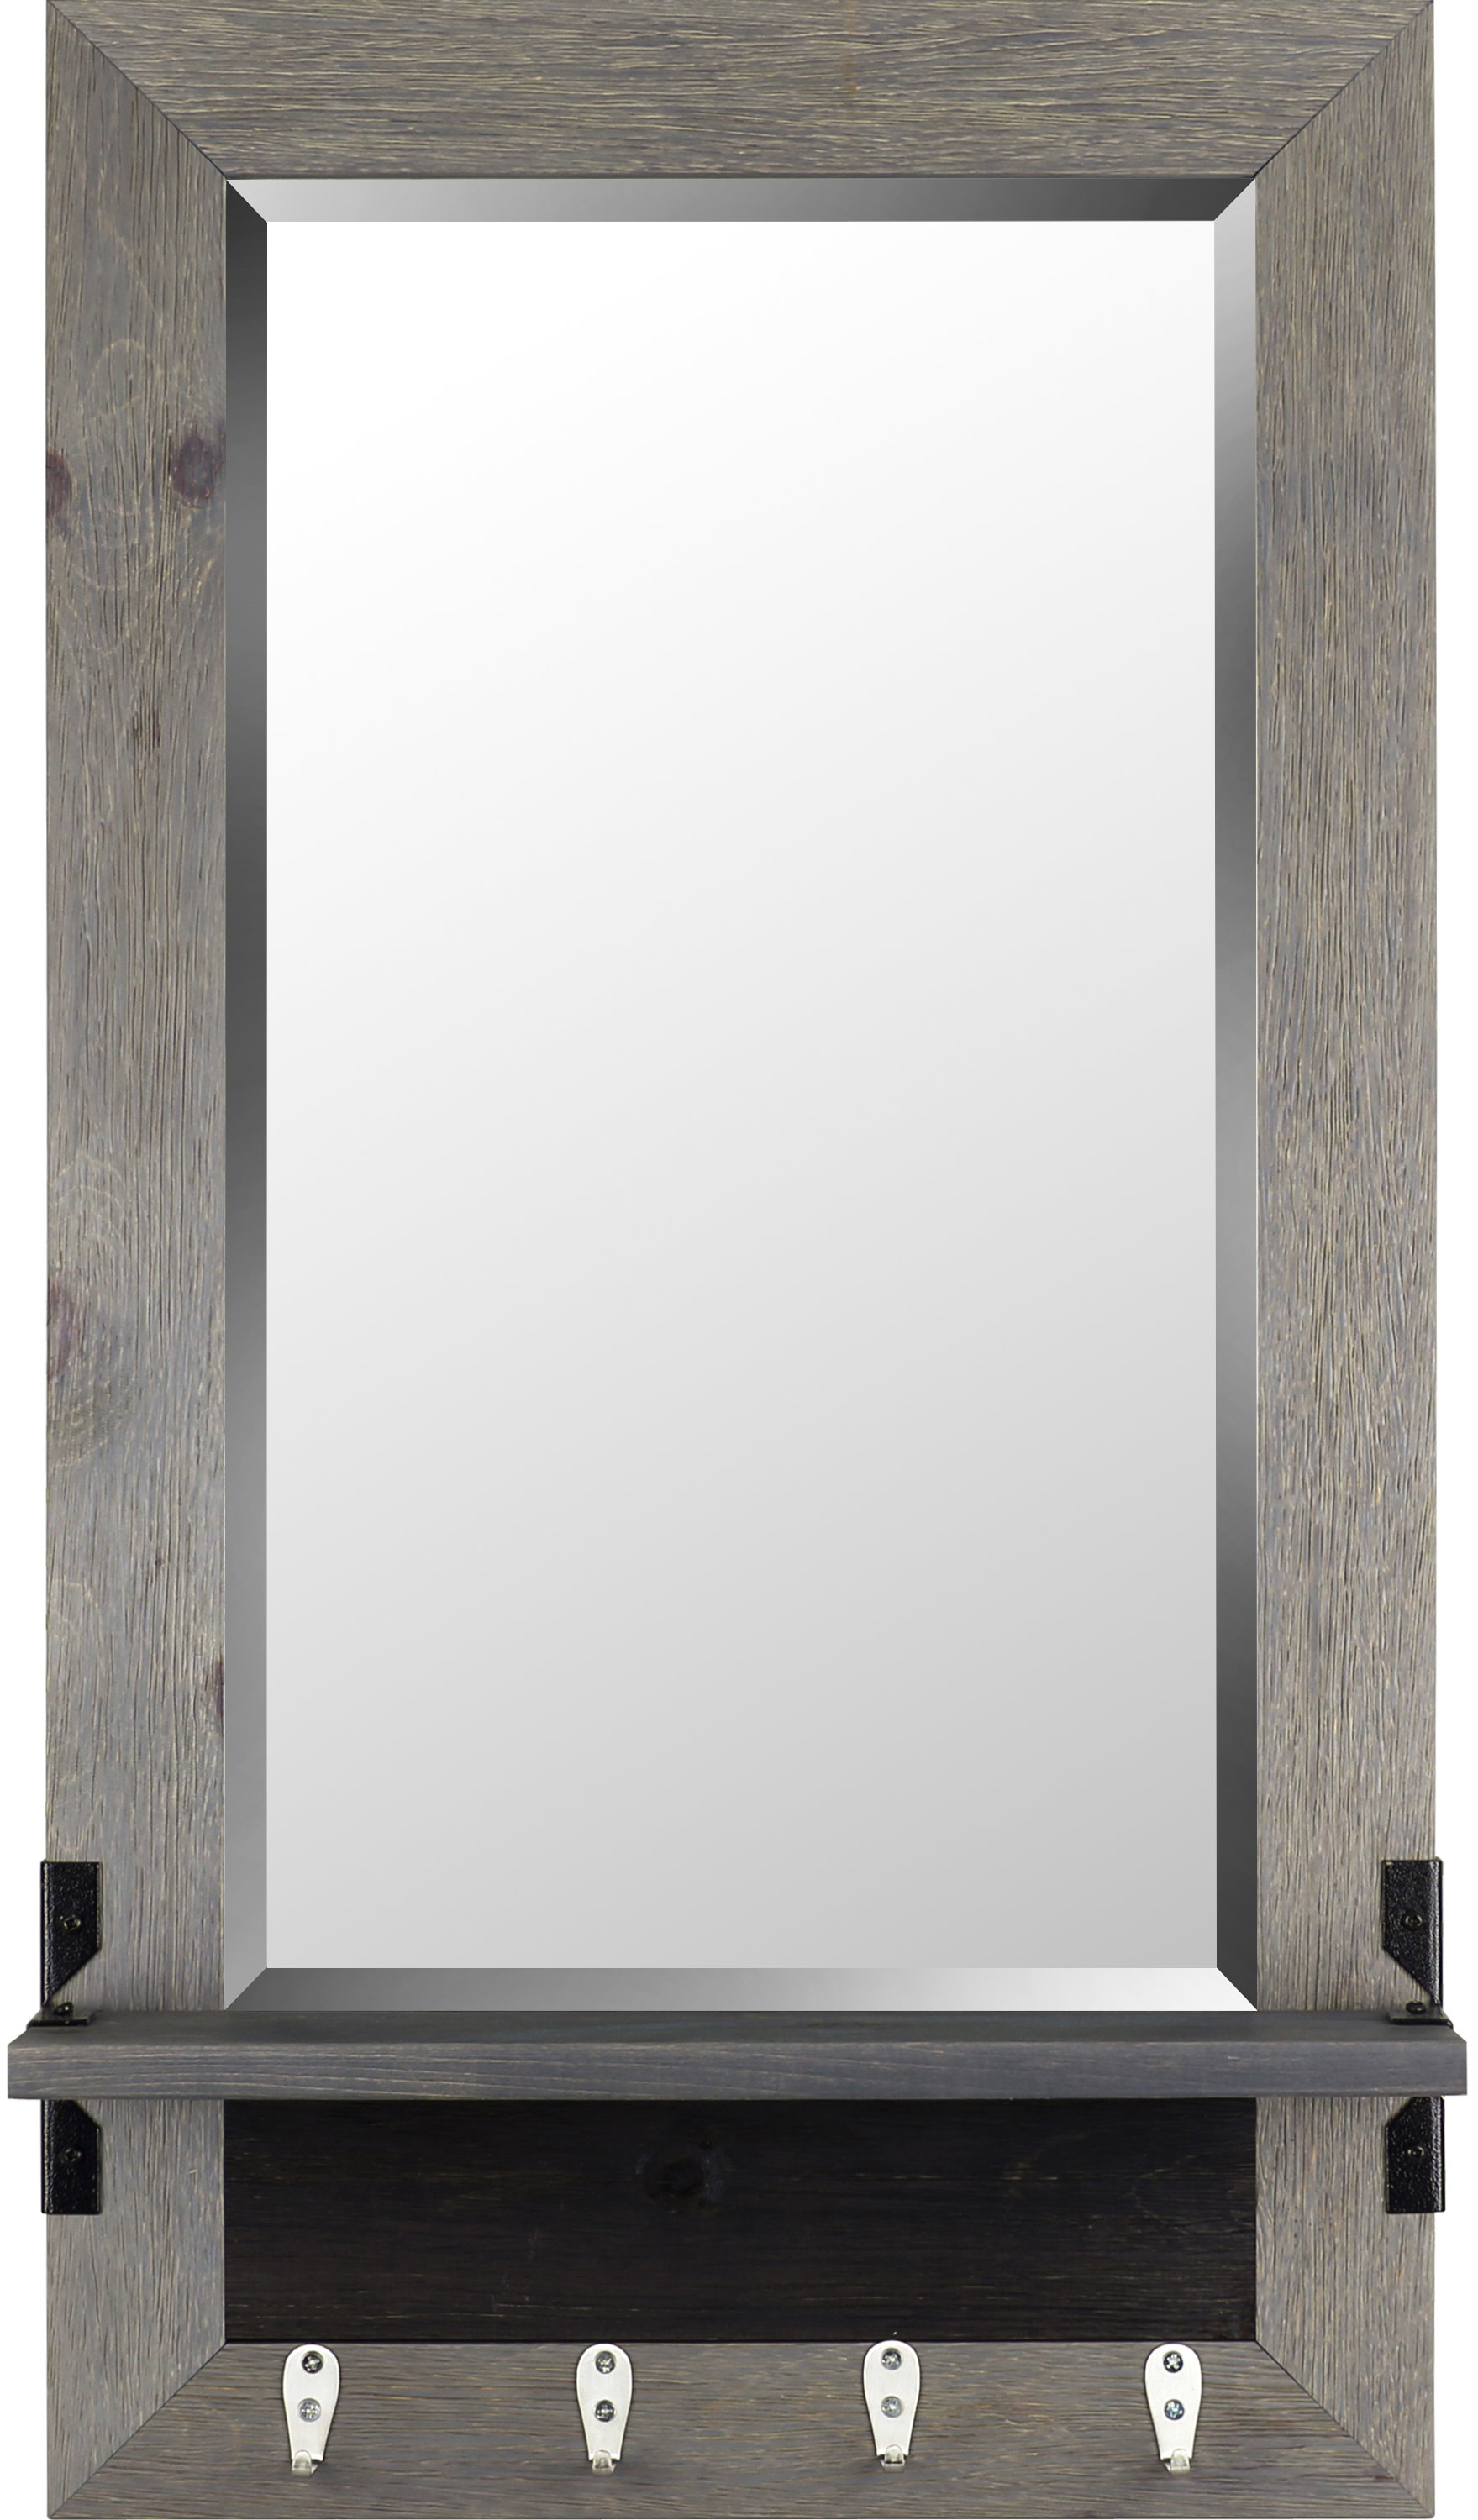 Shelf Wood Modern & Contemporary Beveled Shelves Accent Mirror Within Hallas Wall Organizer Mirrors (Image 18 of 20)